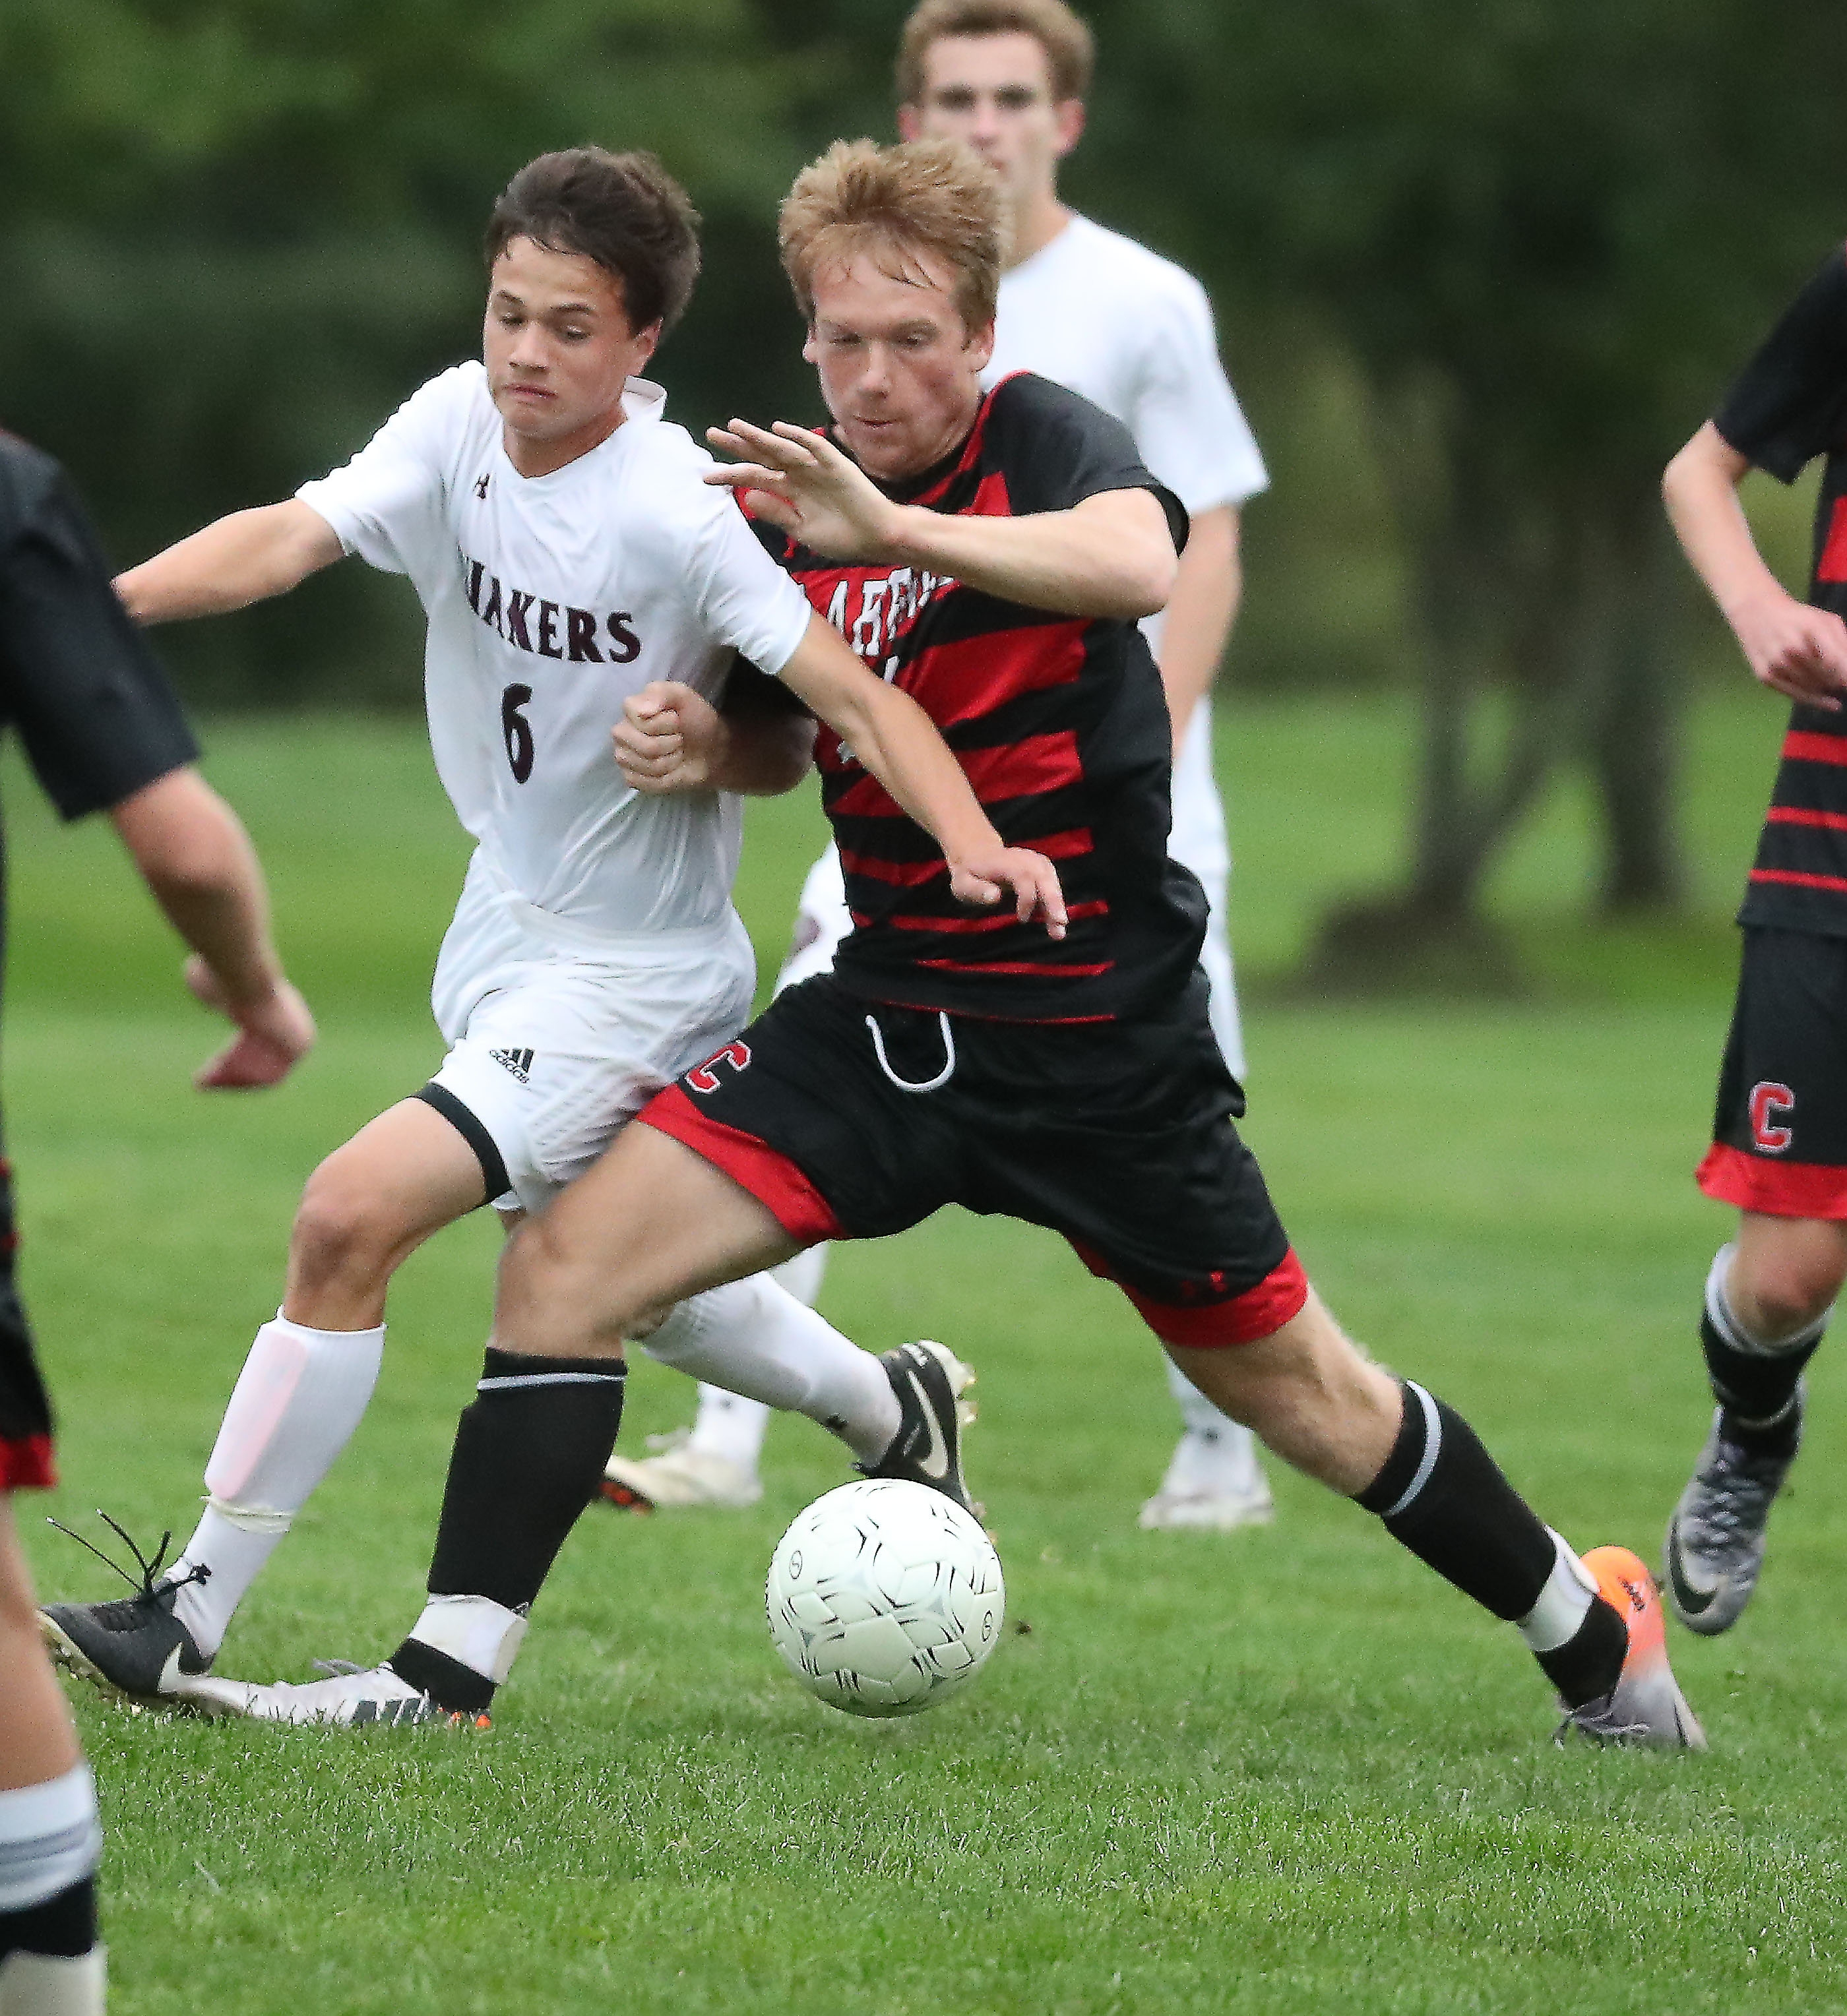 Clarence's Nick Lunetta tries to get position on Orchard Park's Jonathan Pardi in the first half of their game on Friday. The Red Devils never trailed in their win.